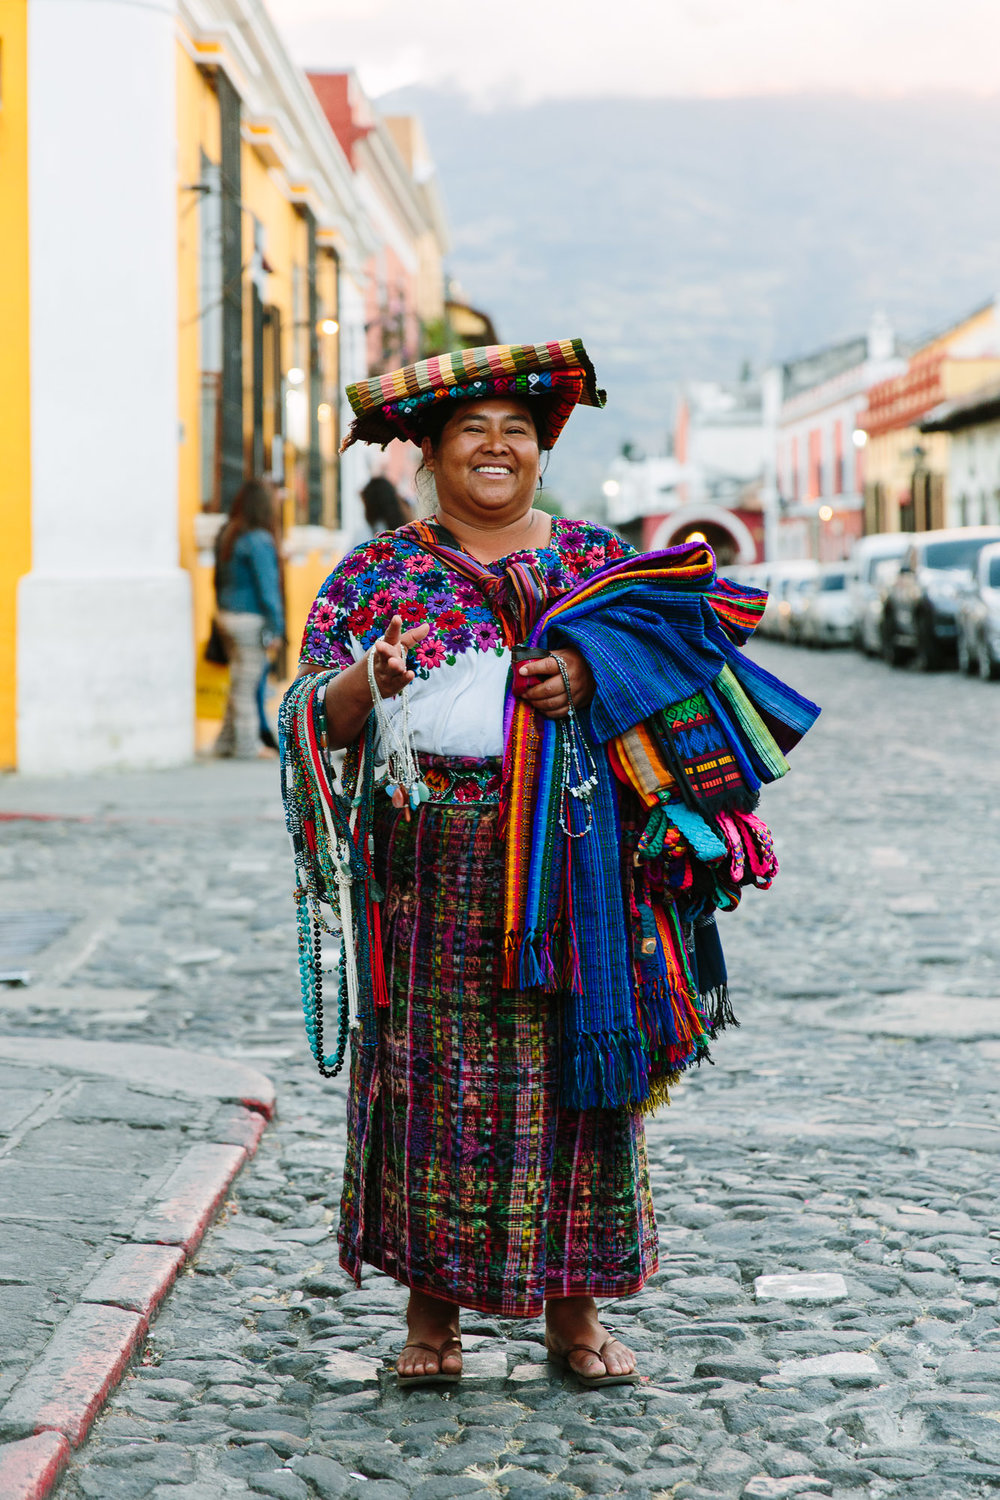 guatemala-christine-han-photography-162.jpg